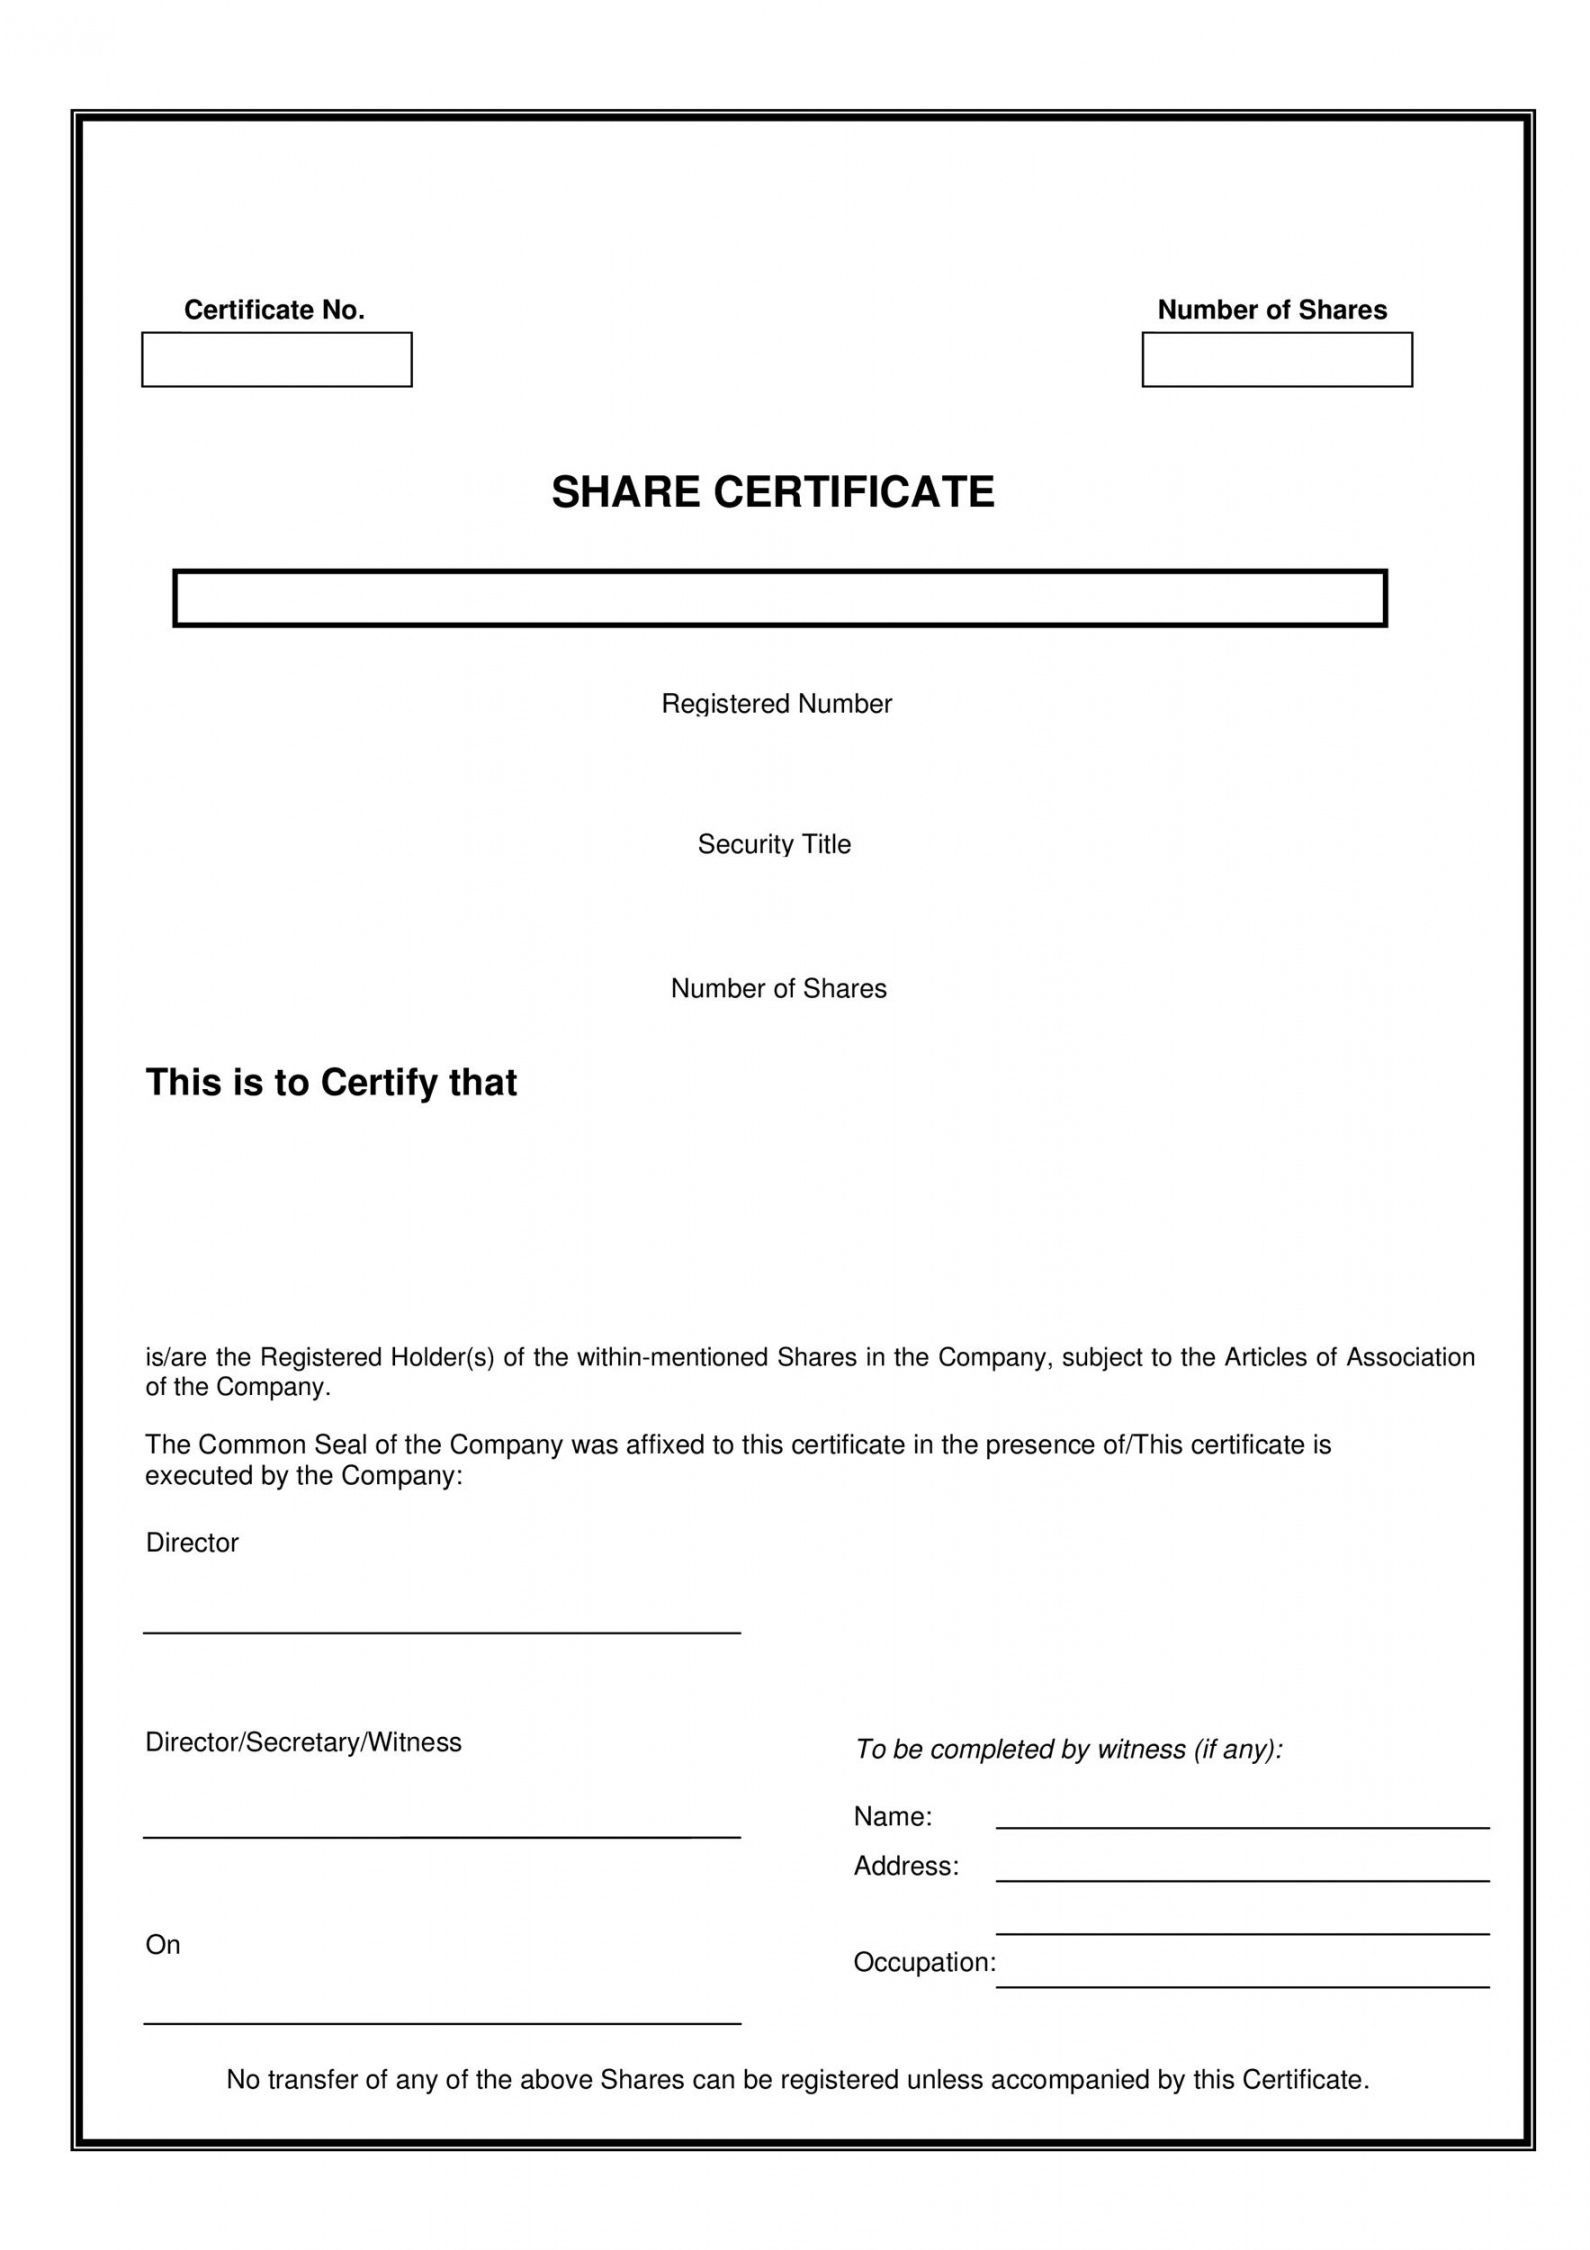 Browse Our Image of Stock Transfer Certificate Template in